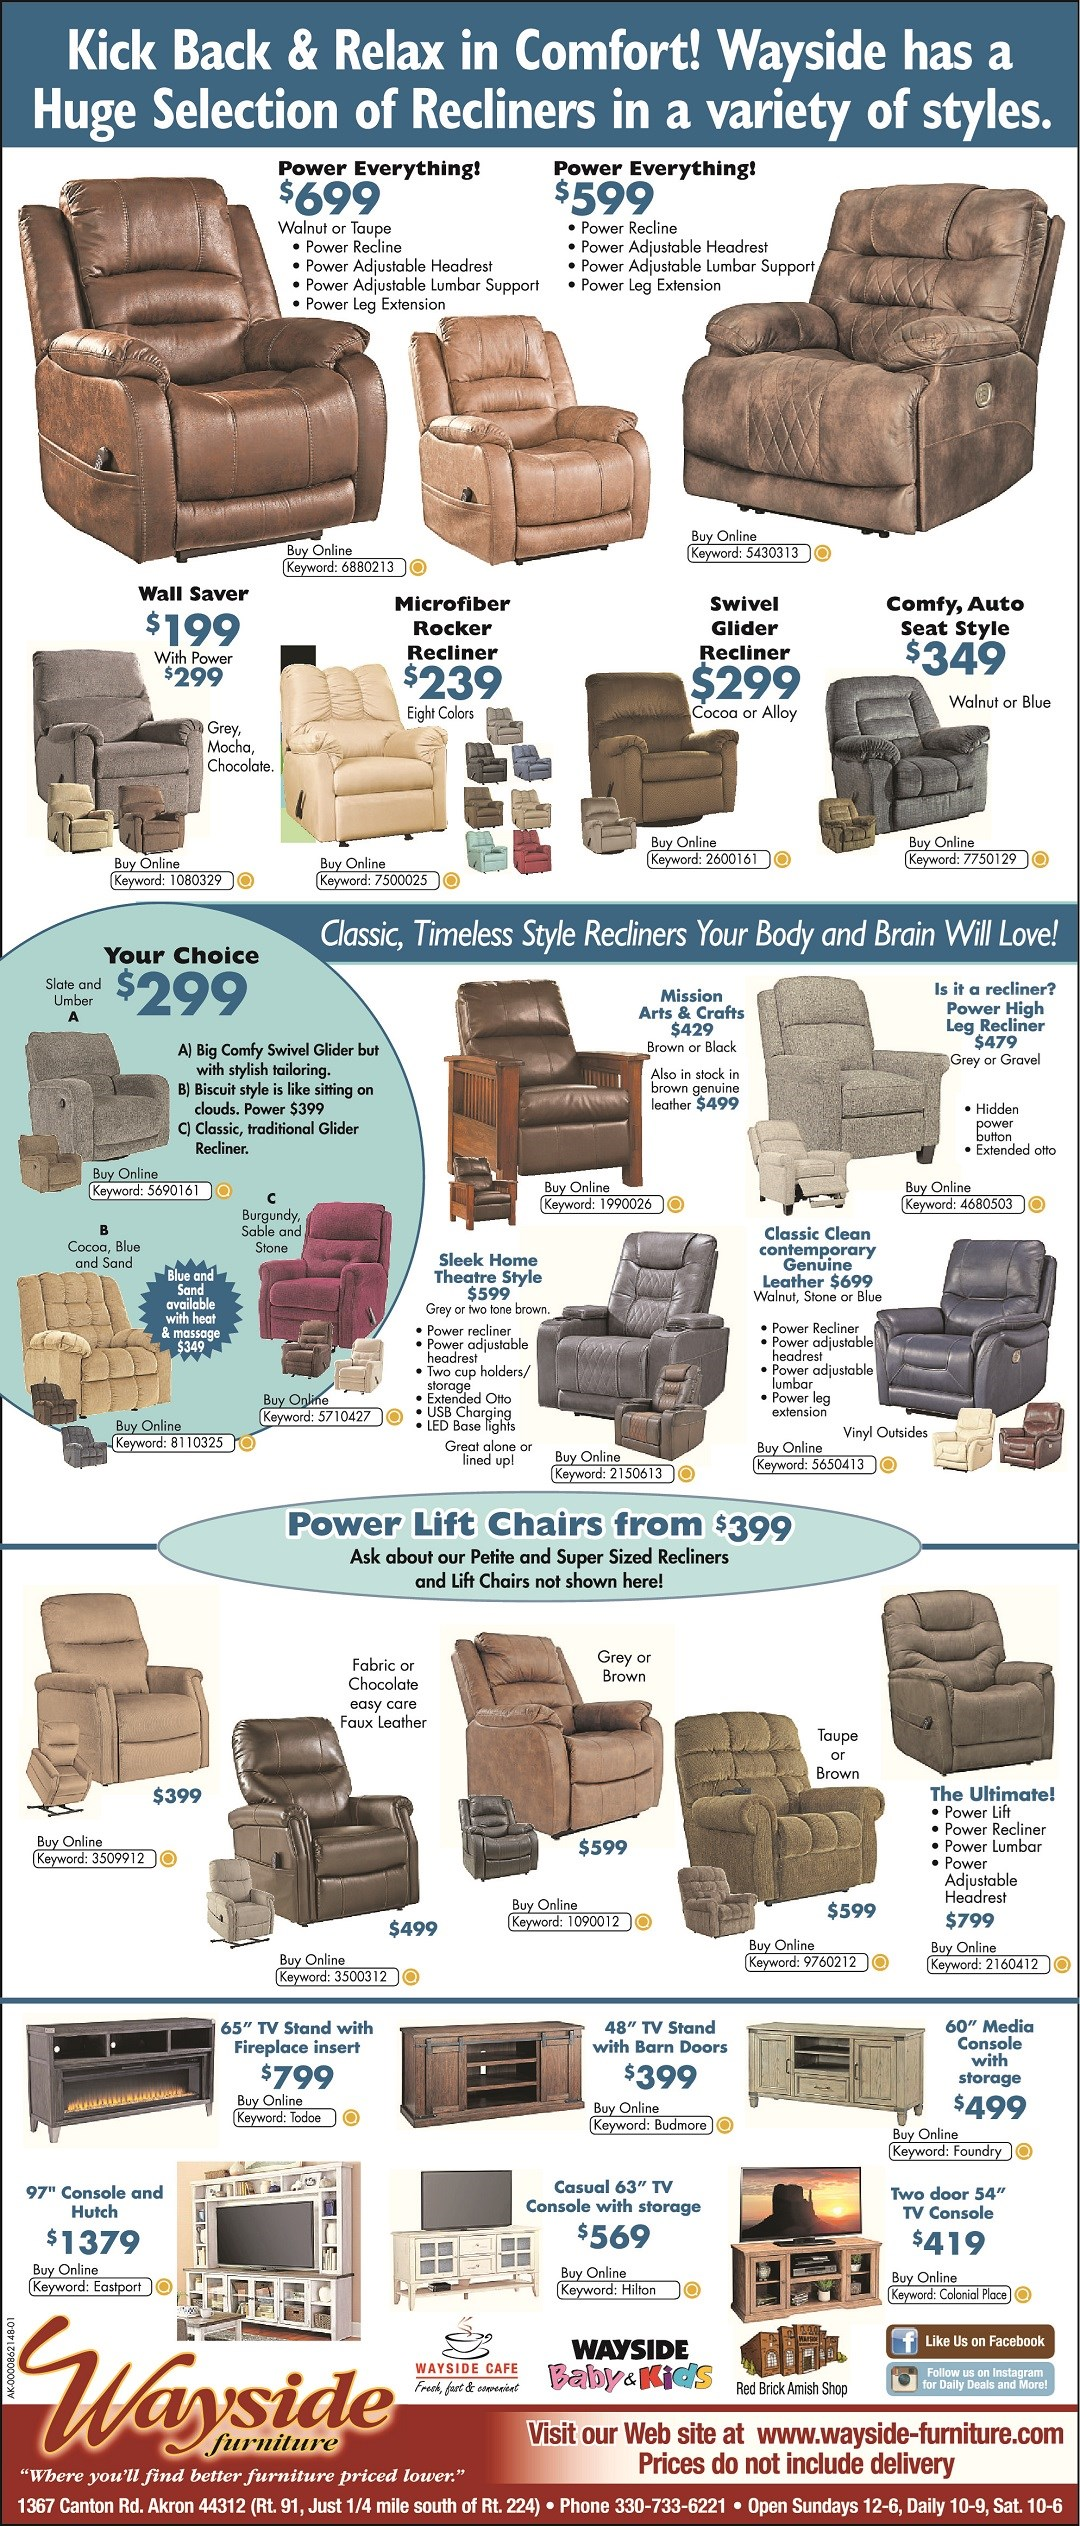 Kick back & Relax in Comfort! Wayside has a huge slection of recliners in a variety of styles.